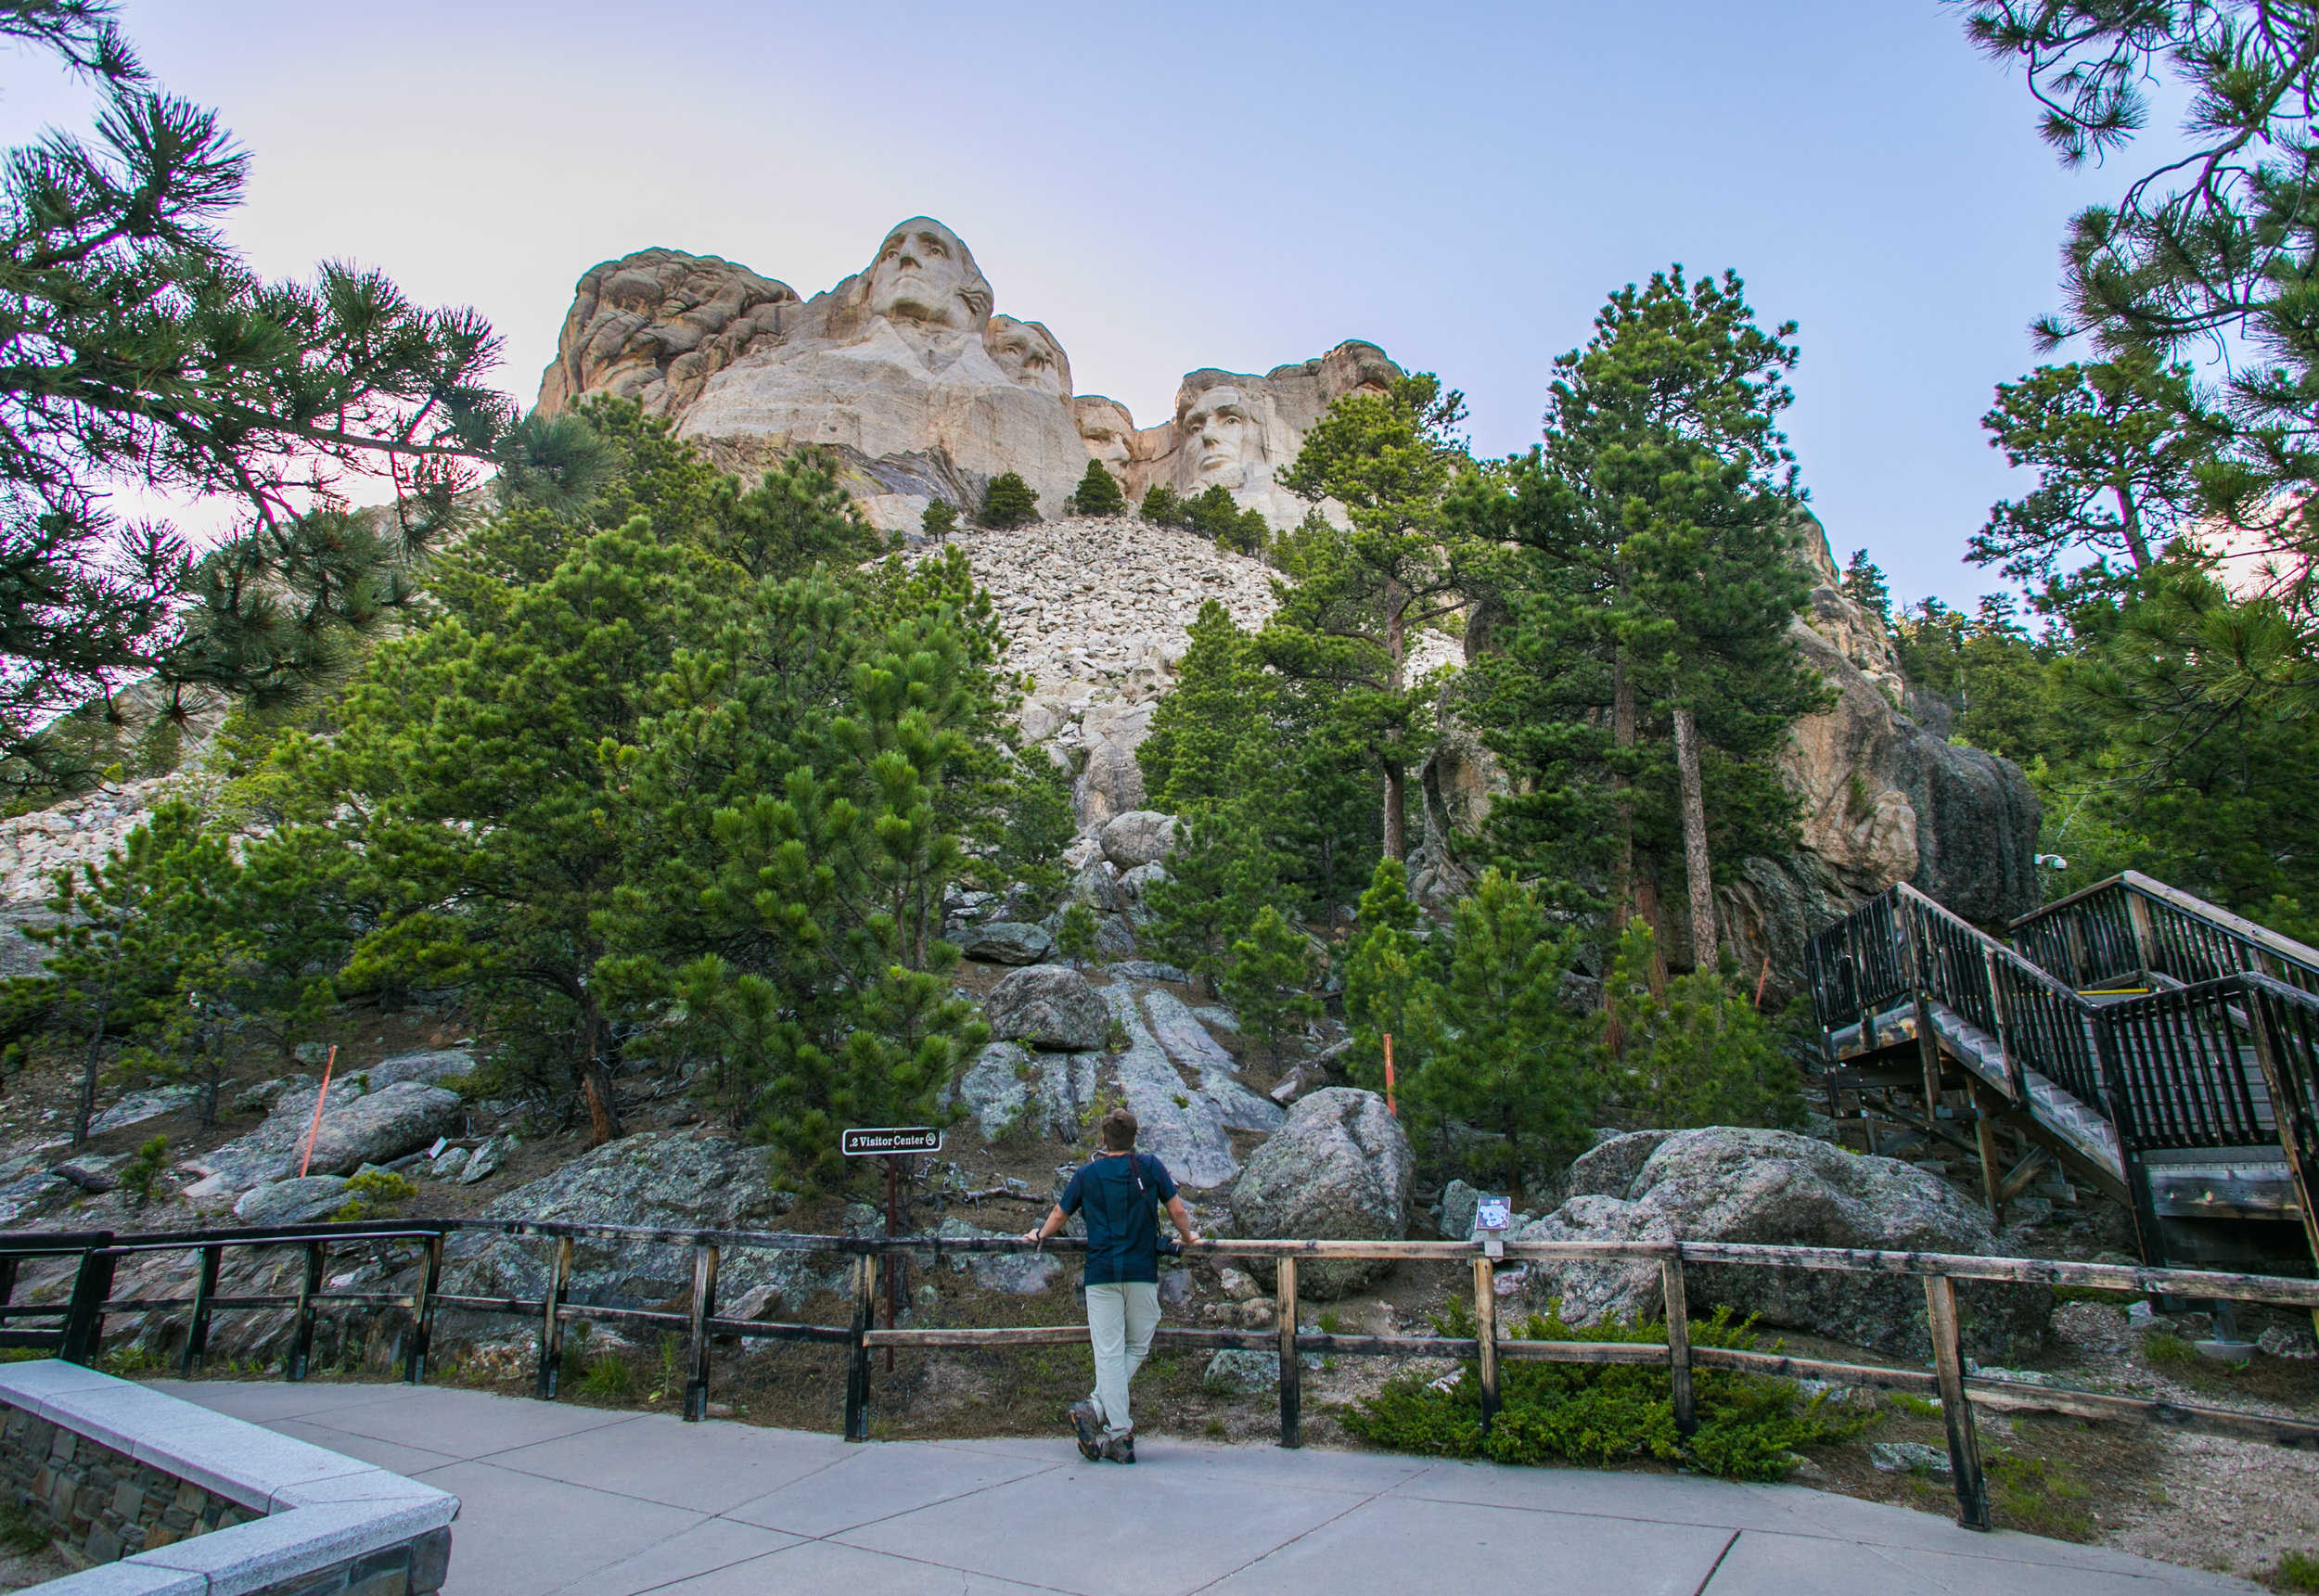 Mt. Rushmore, Black Hills National Forest, SD